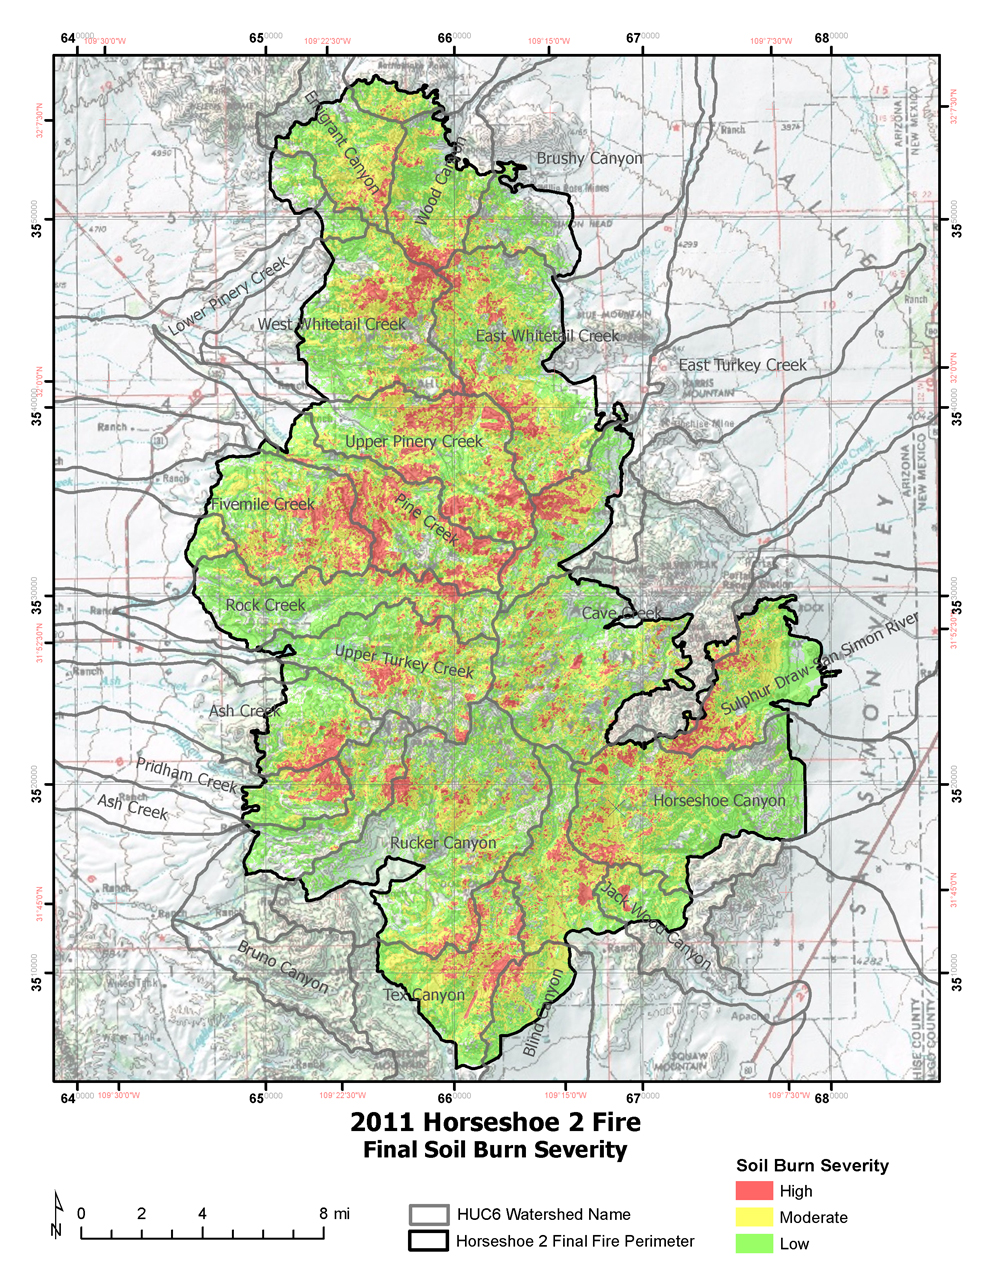 Figure 3: Map of Horseshoe 2 Fire final soil burn severity (Coronado National Forest 2011).